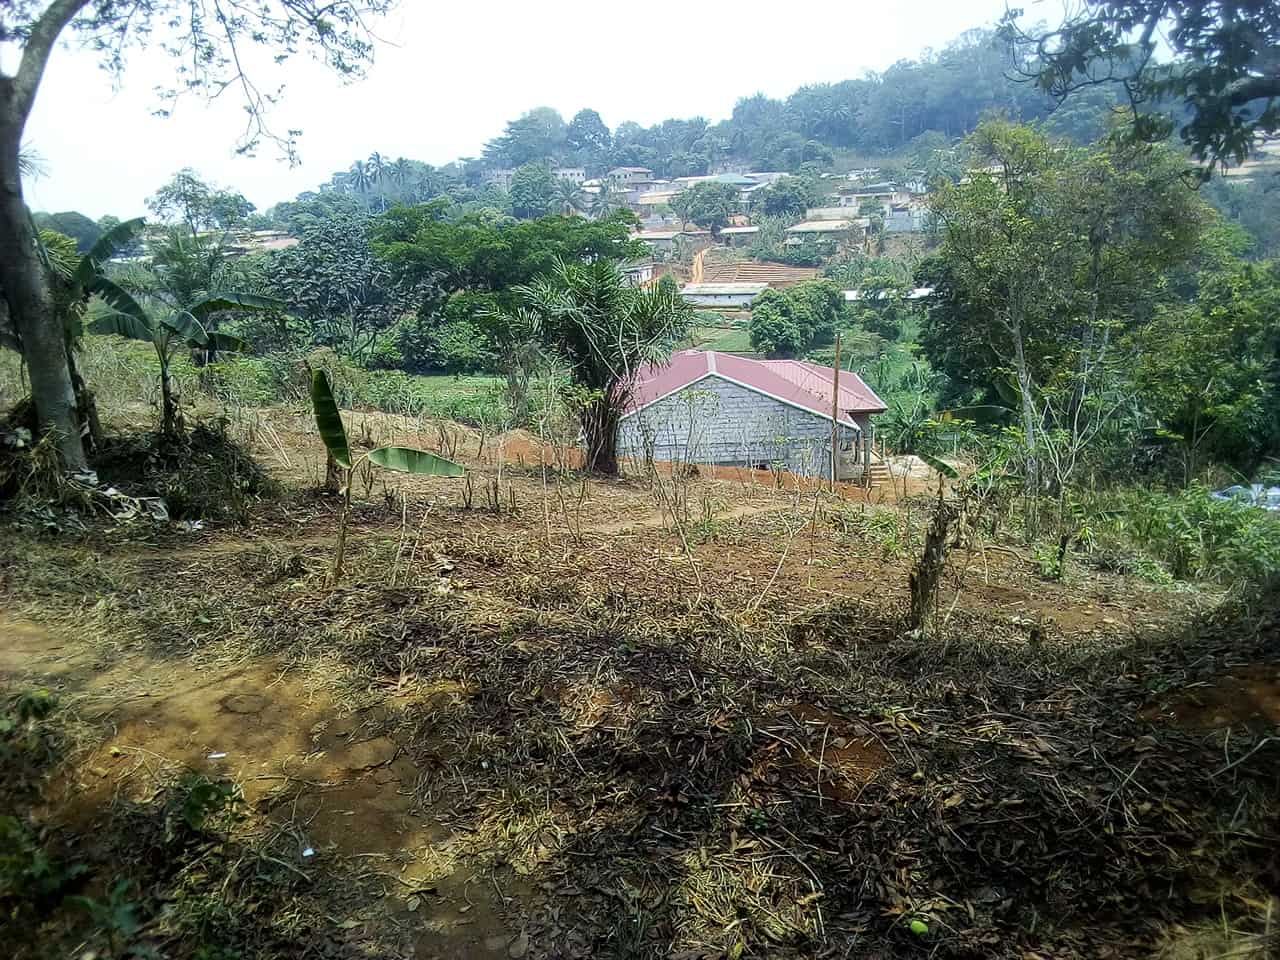 Land for sale at Yaoundé, Nkolondom, carrefour theo - 1000 m2 - 30 000 000 FCFA